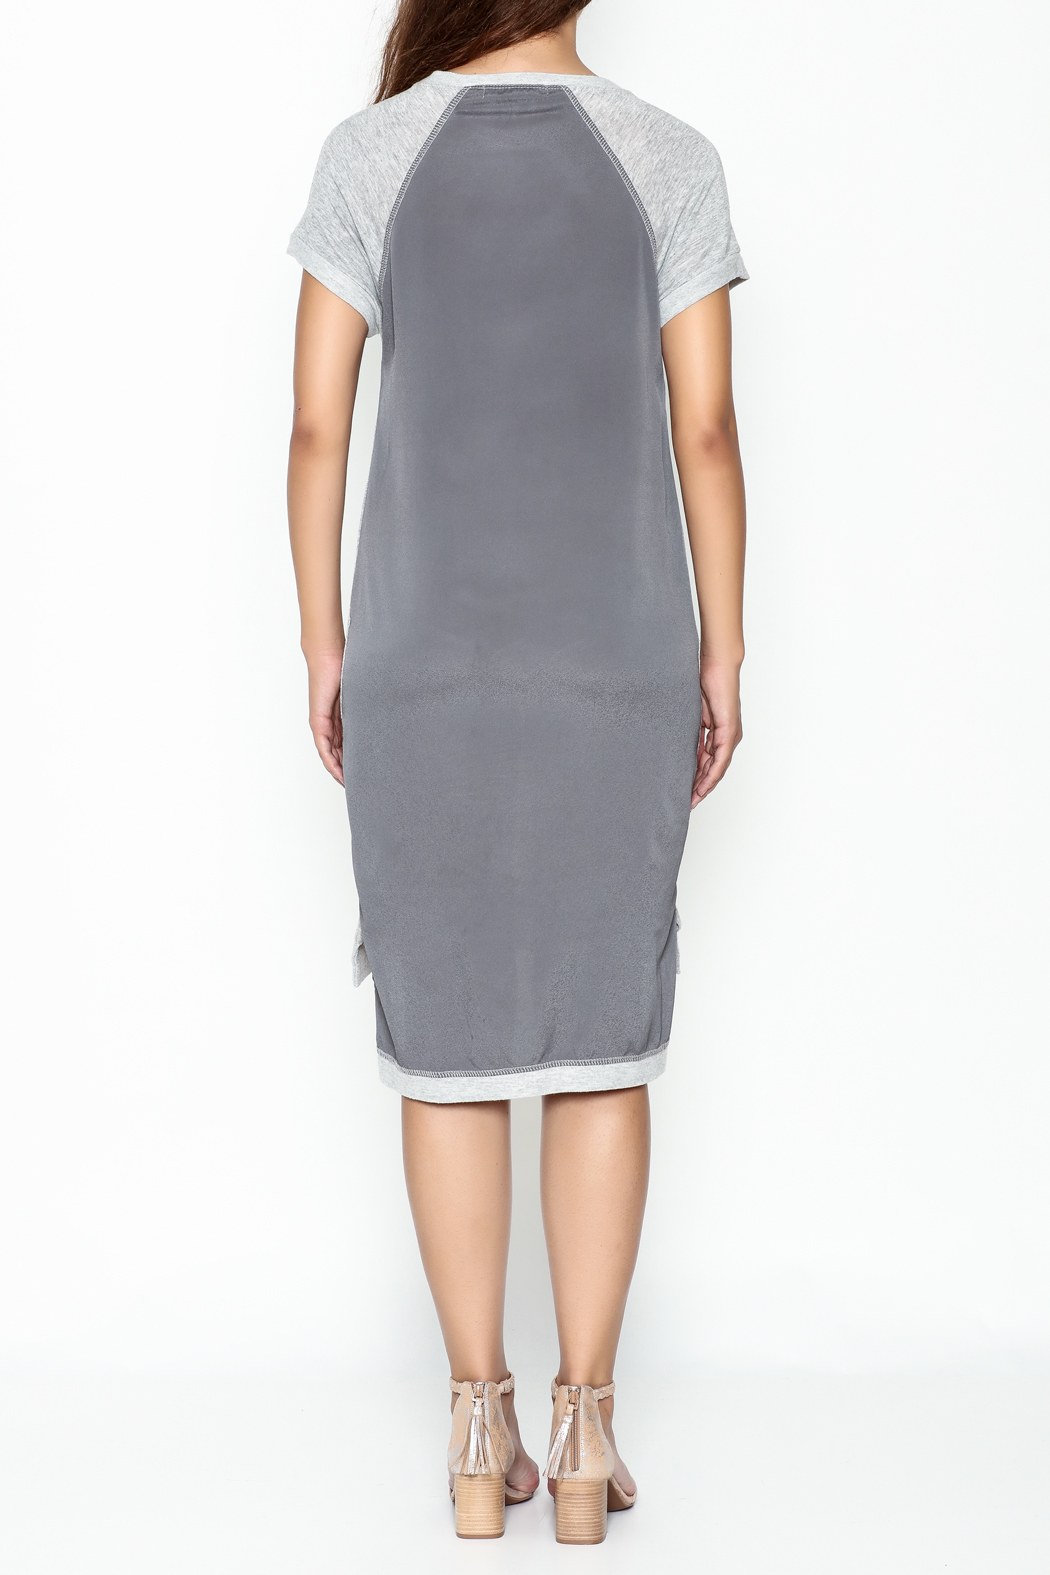 Coin 1804 T Shirt Dress - Back Cropped Image